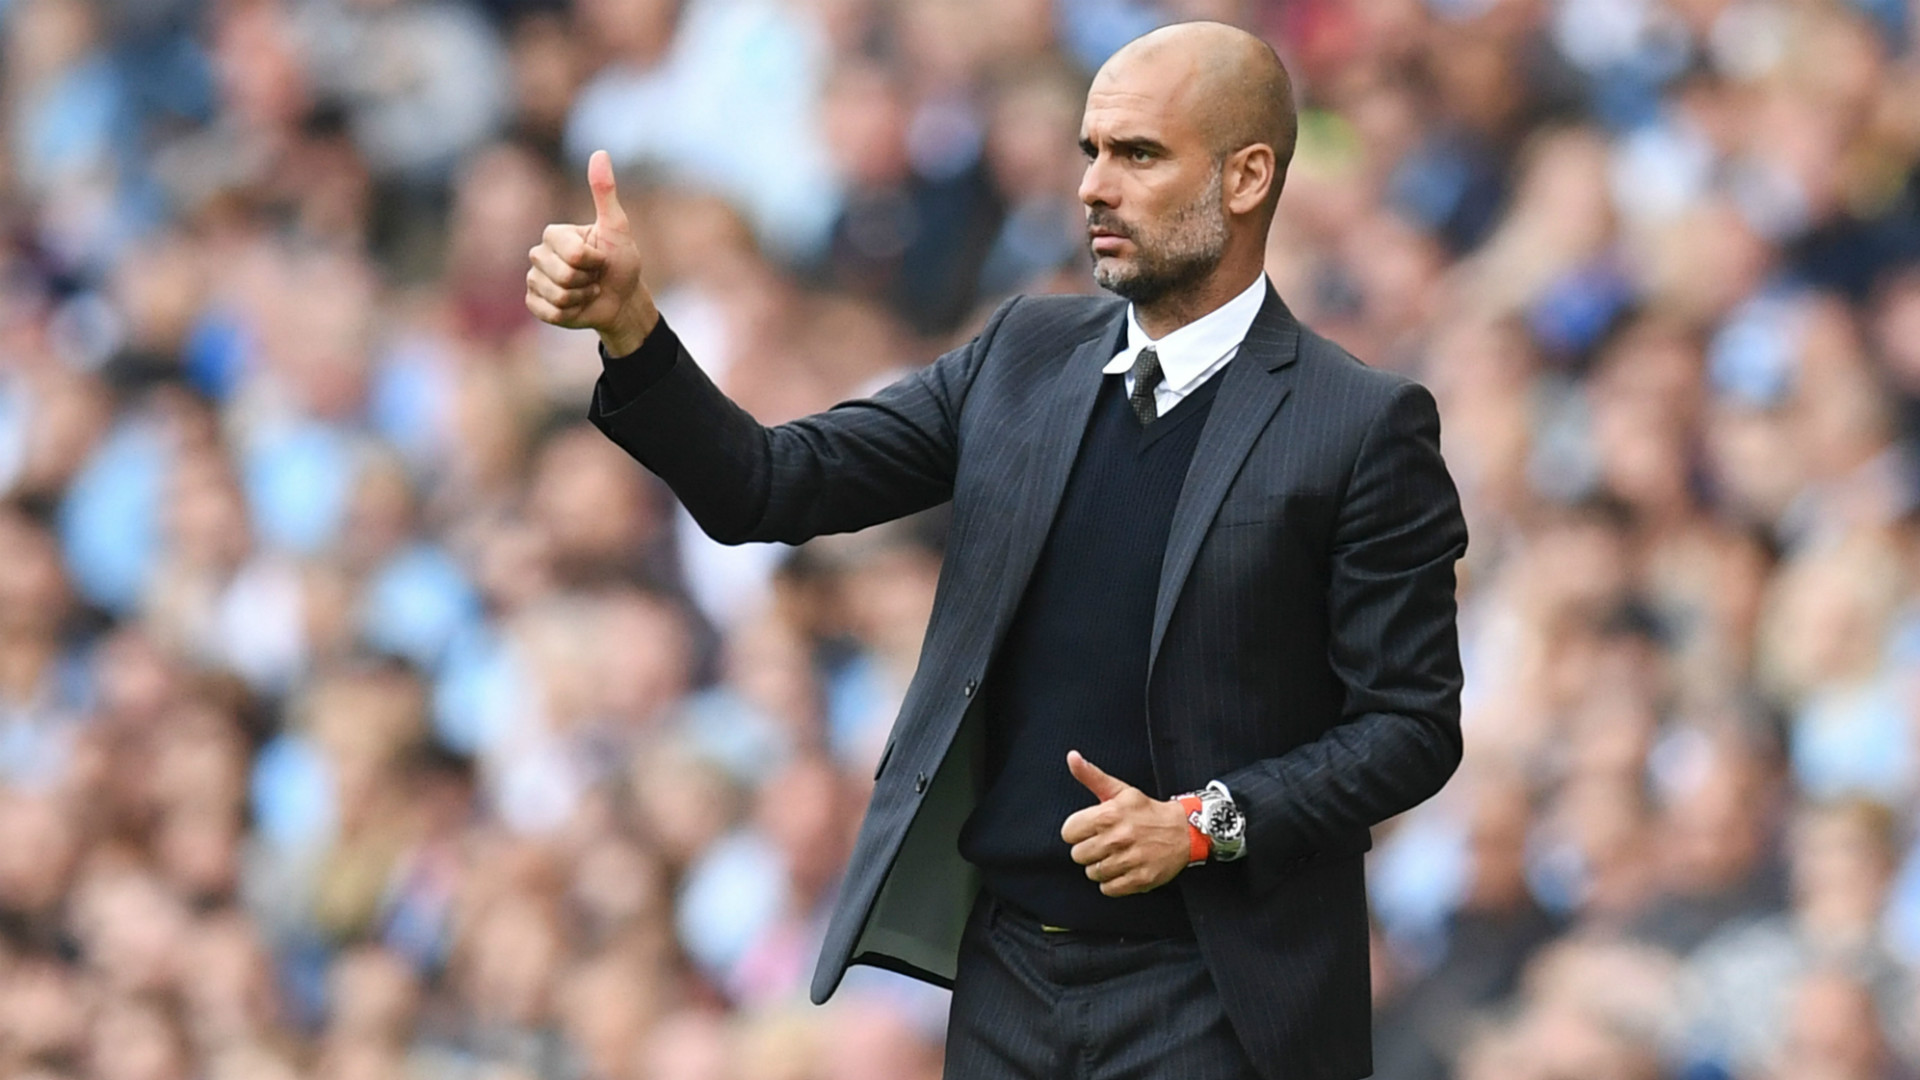 Everything you need for Manchester City v Everton on SBS